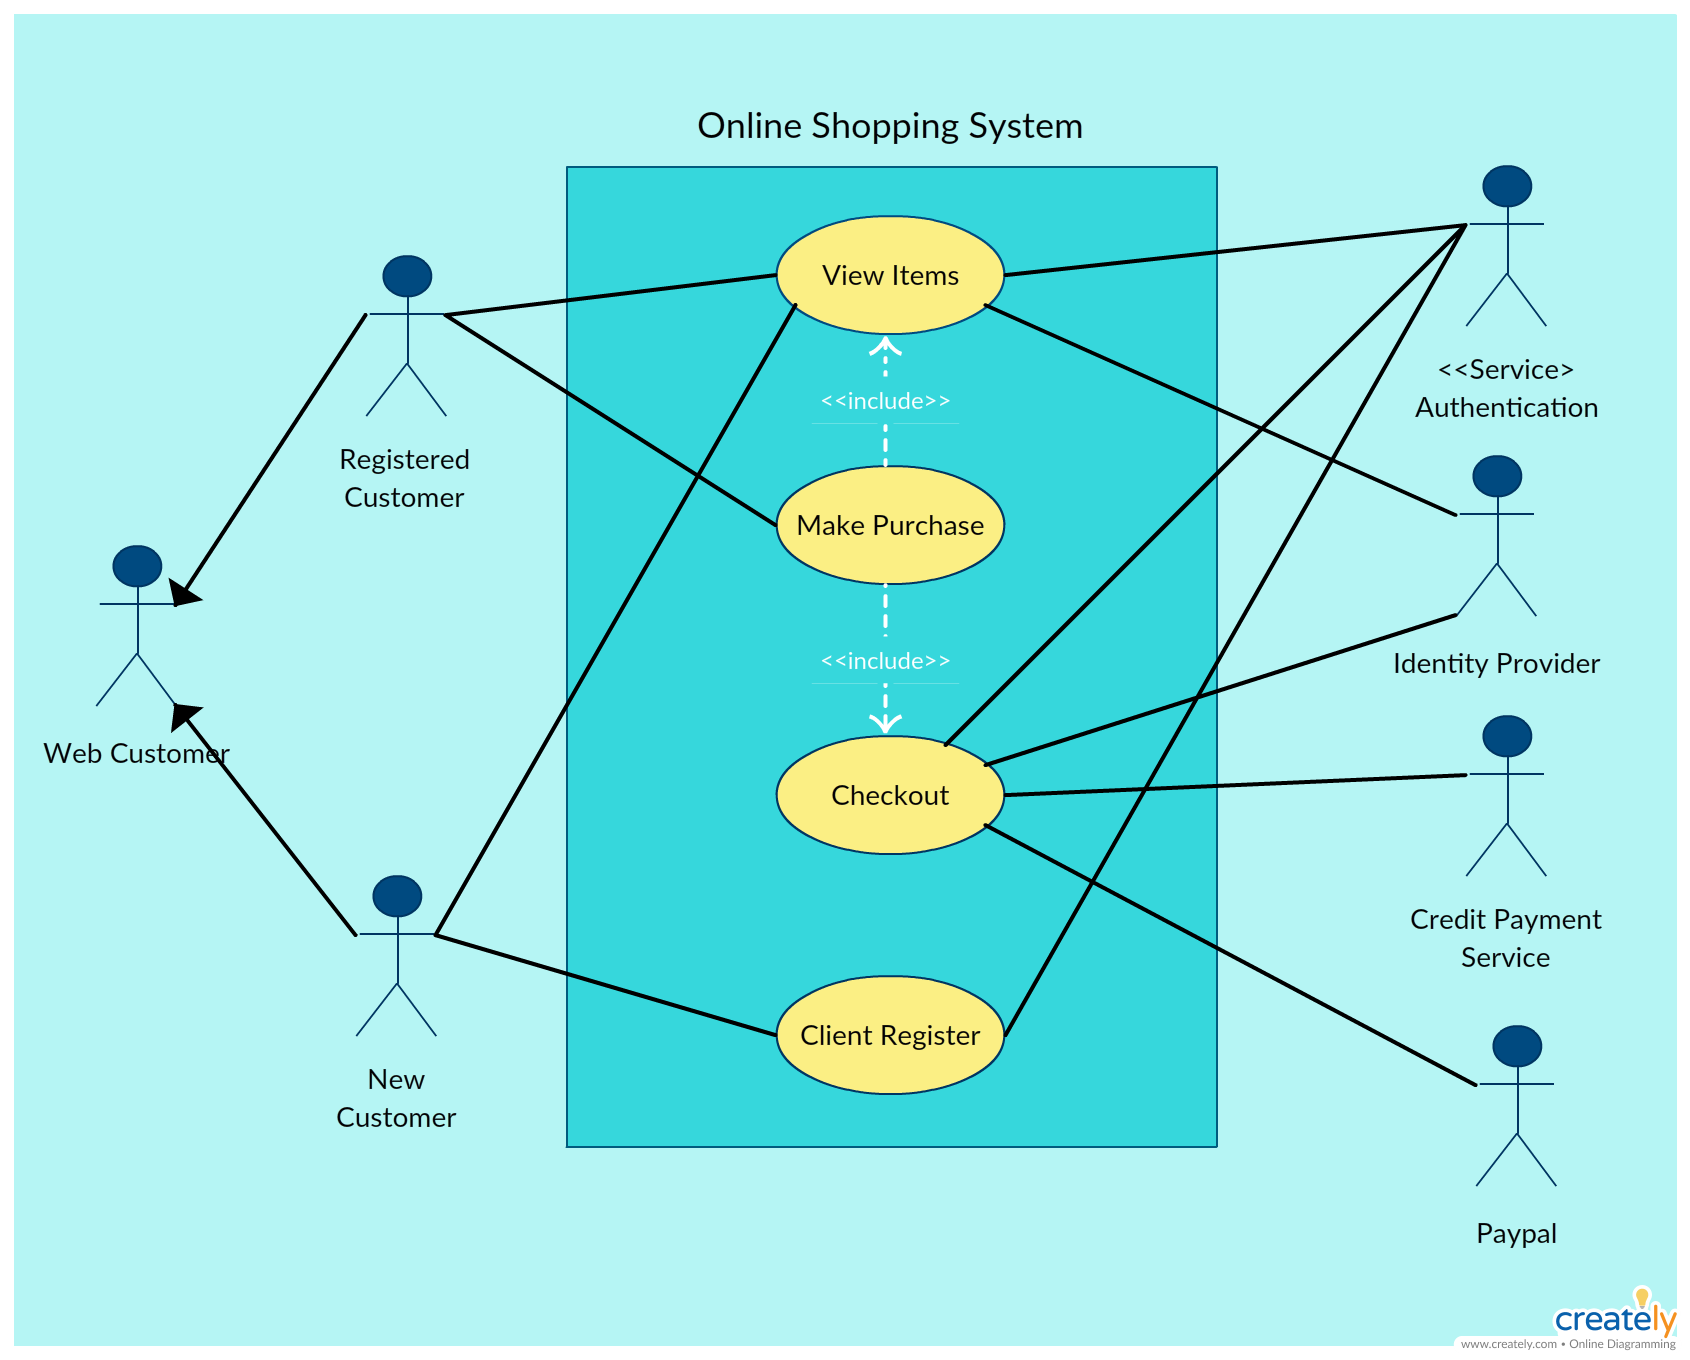 hight resolution of online shopping system use case diagram use case diagram for online shopping system is used to understand different roles actors of various levels